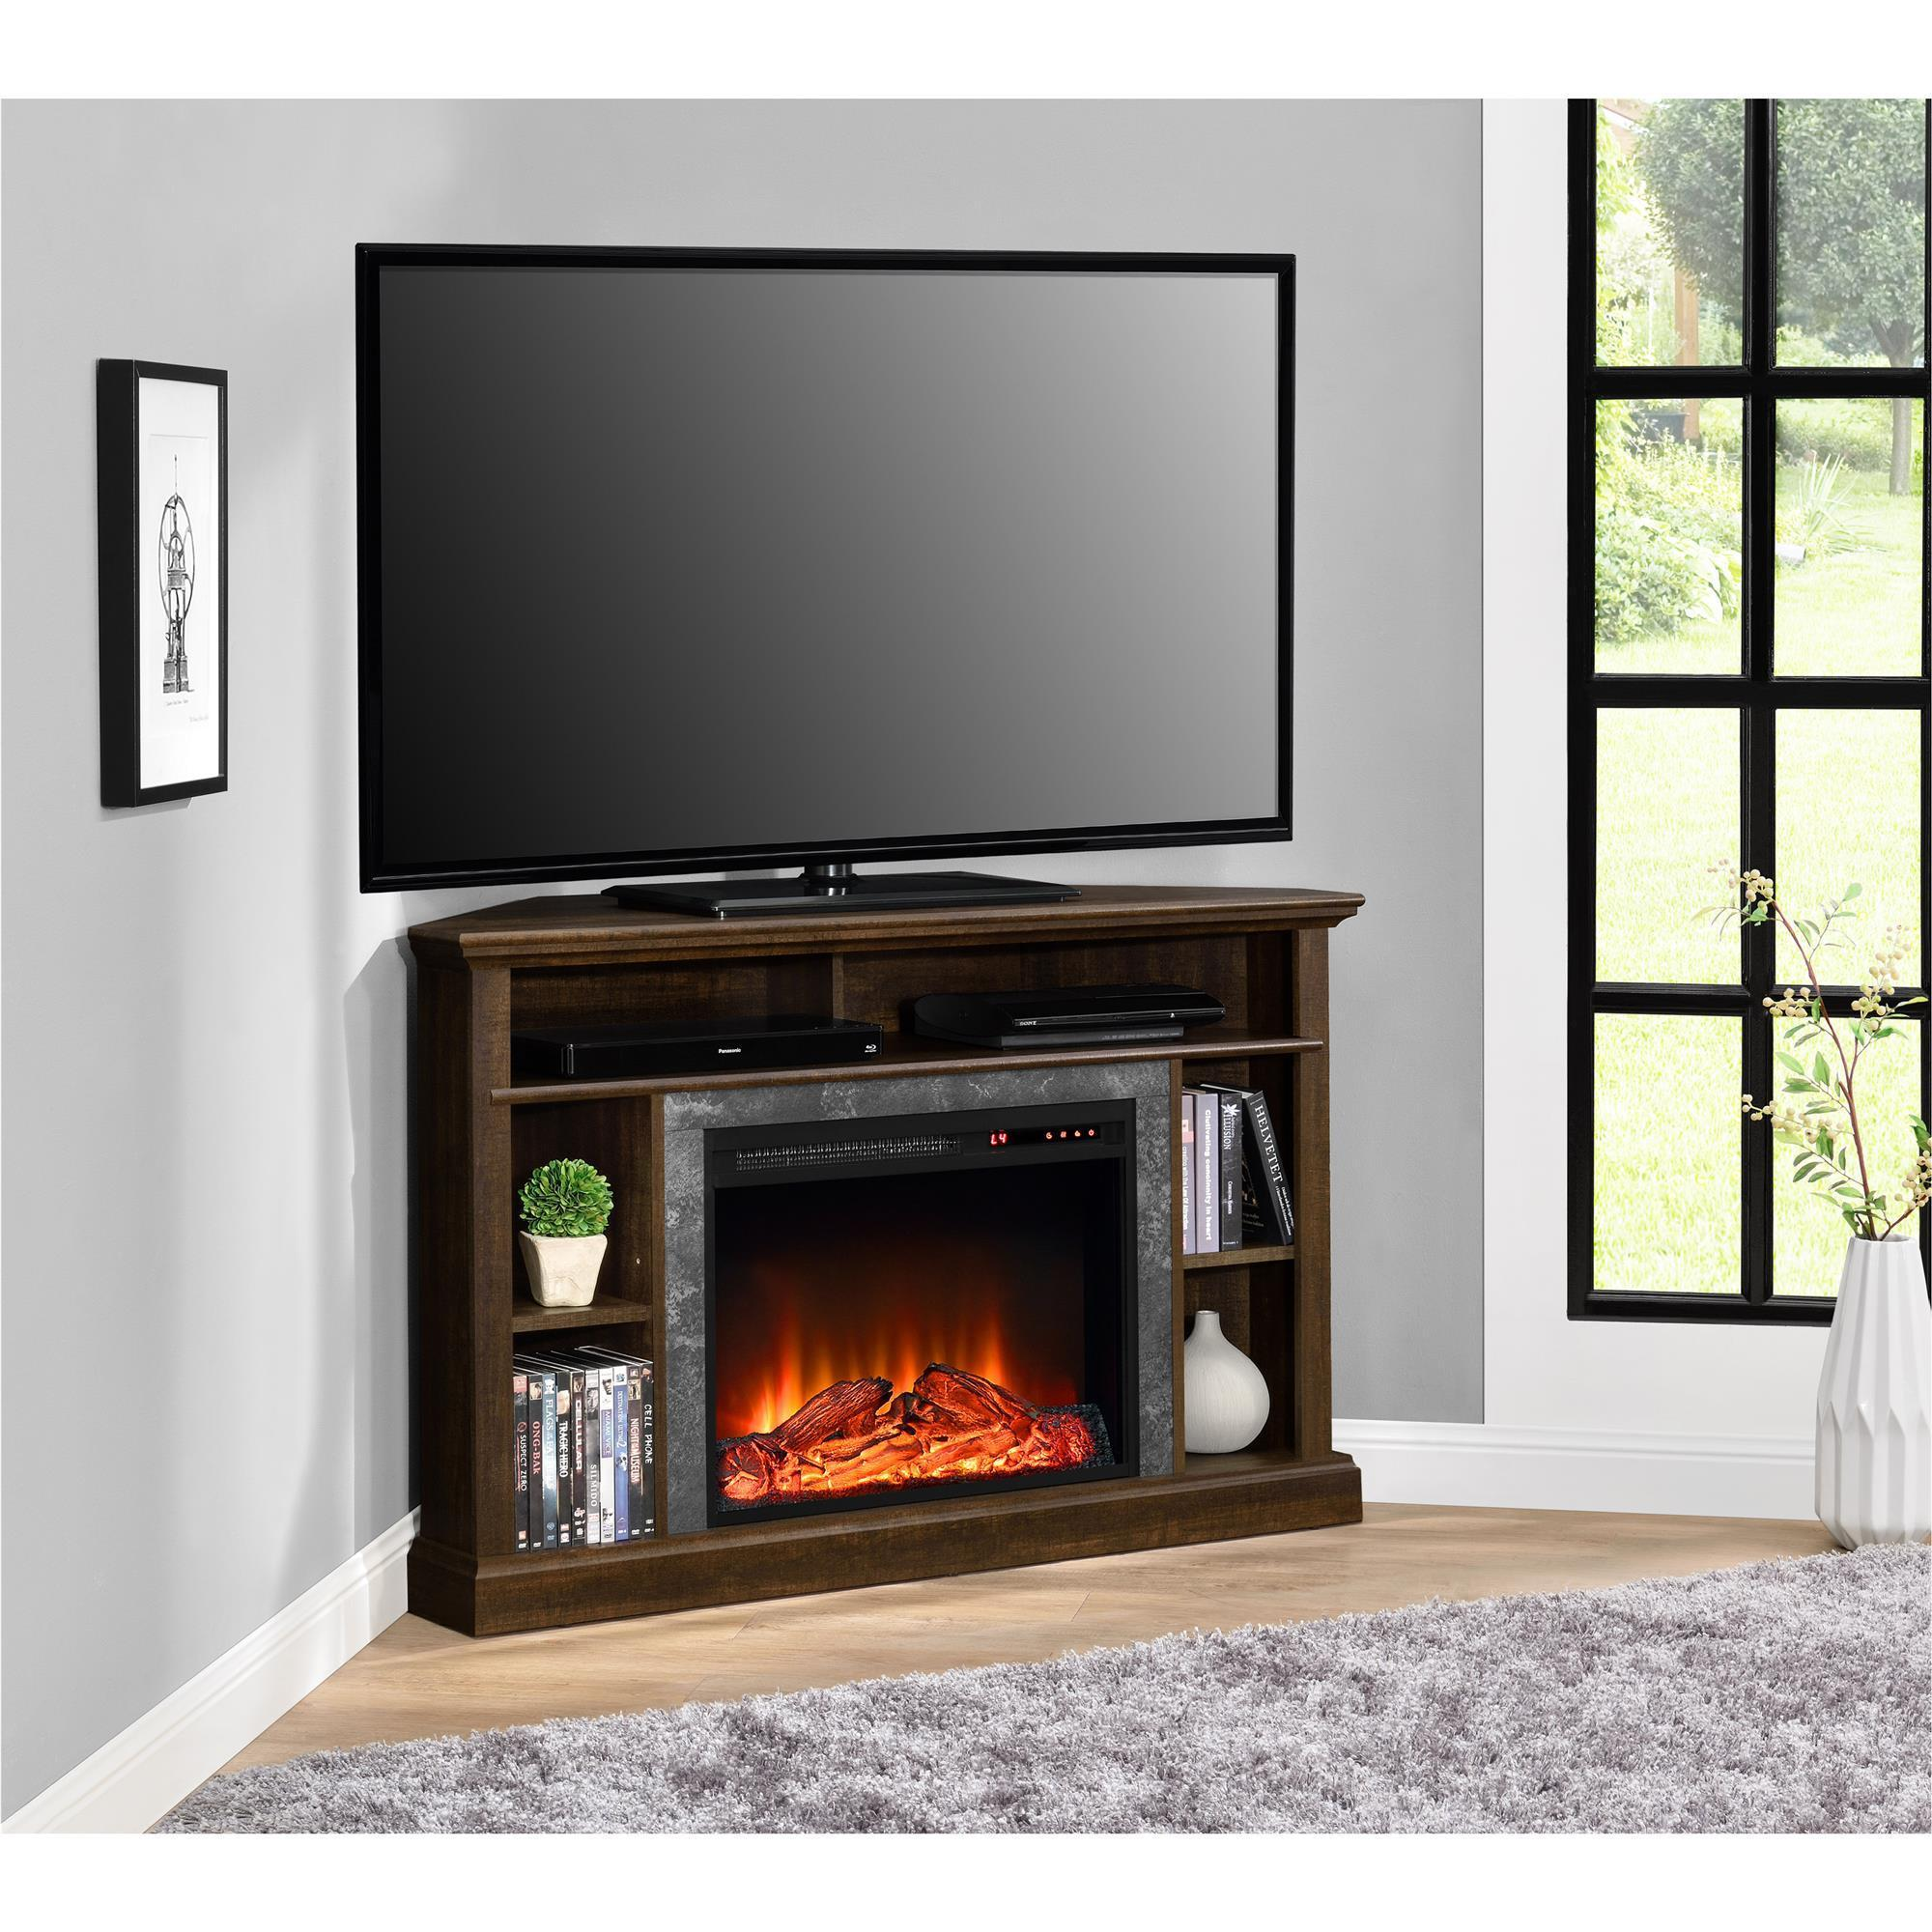 corner new with room propane interior design fantastical decorating wonderfull decor home house fireplace modern fireplaces